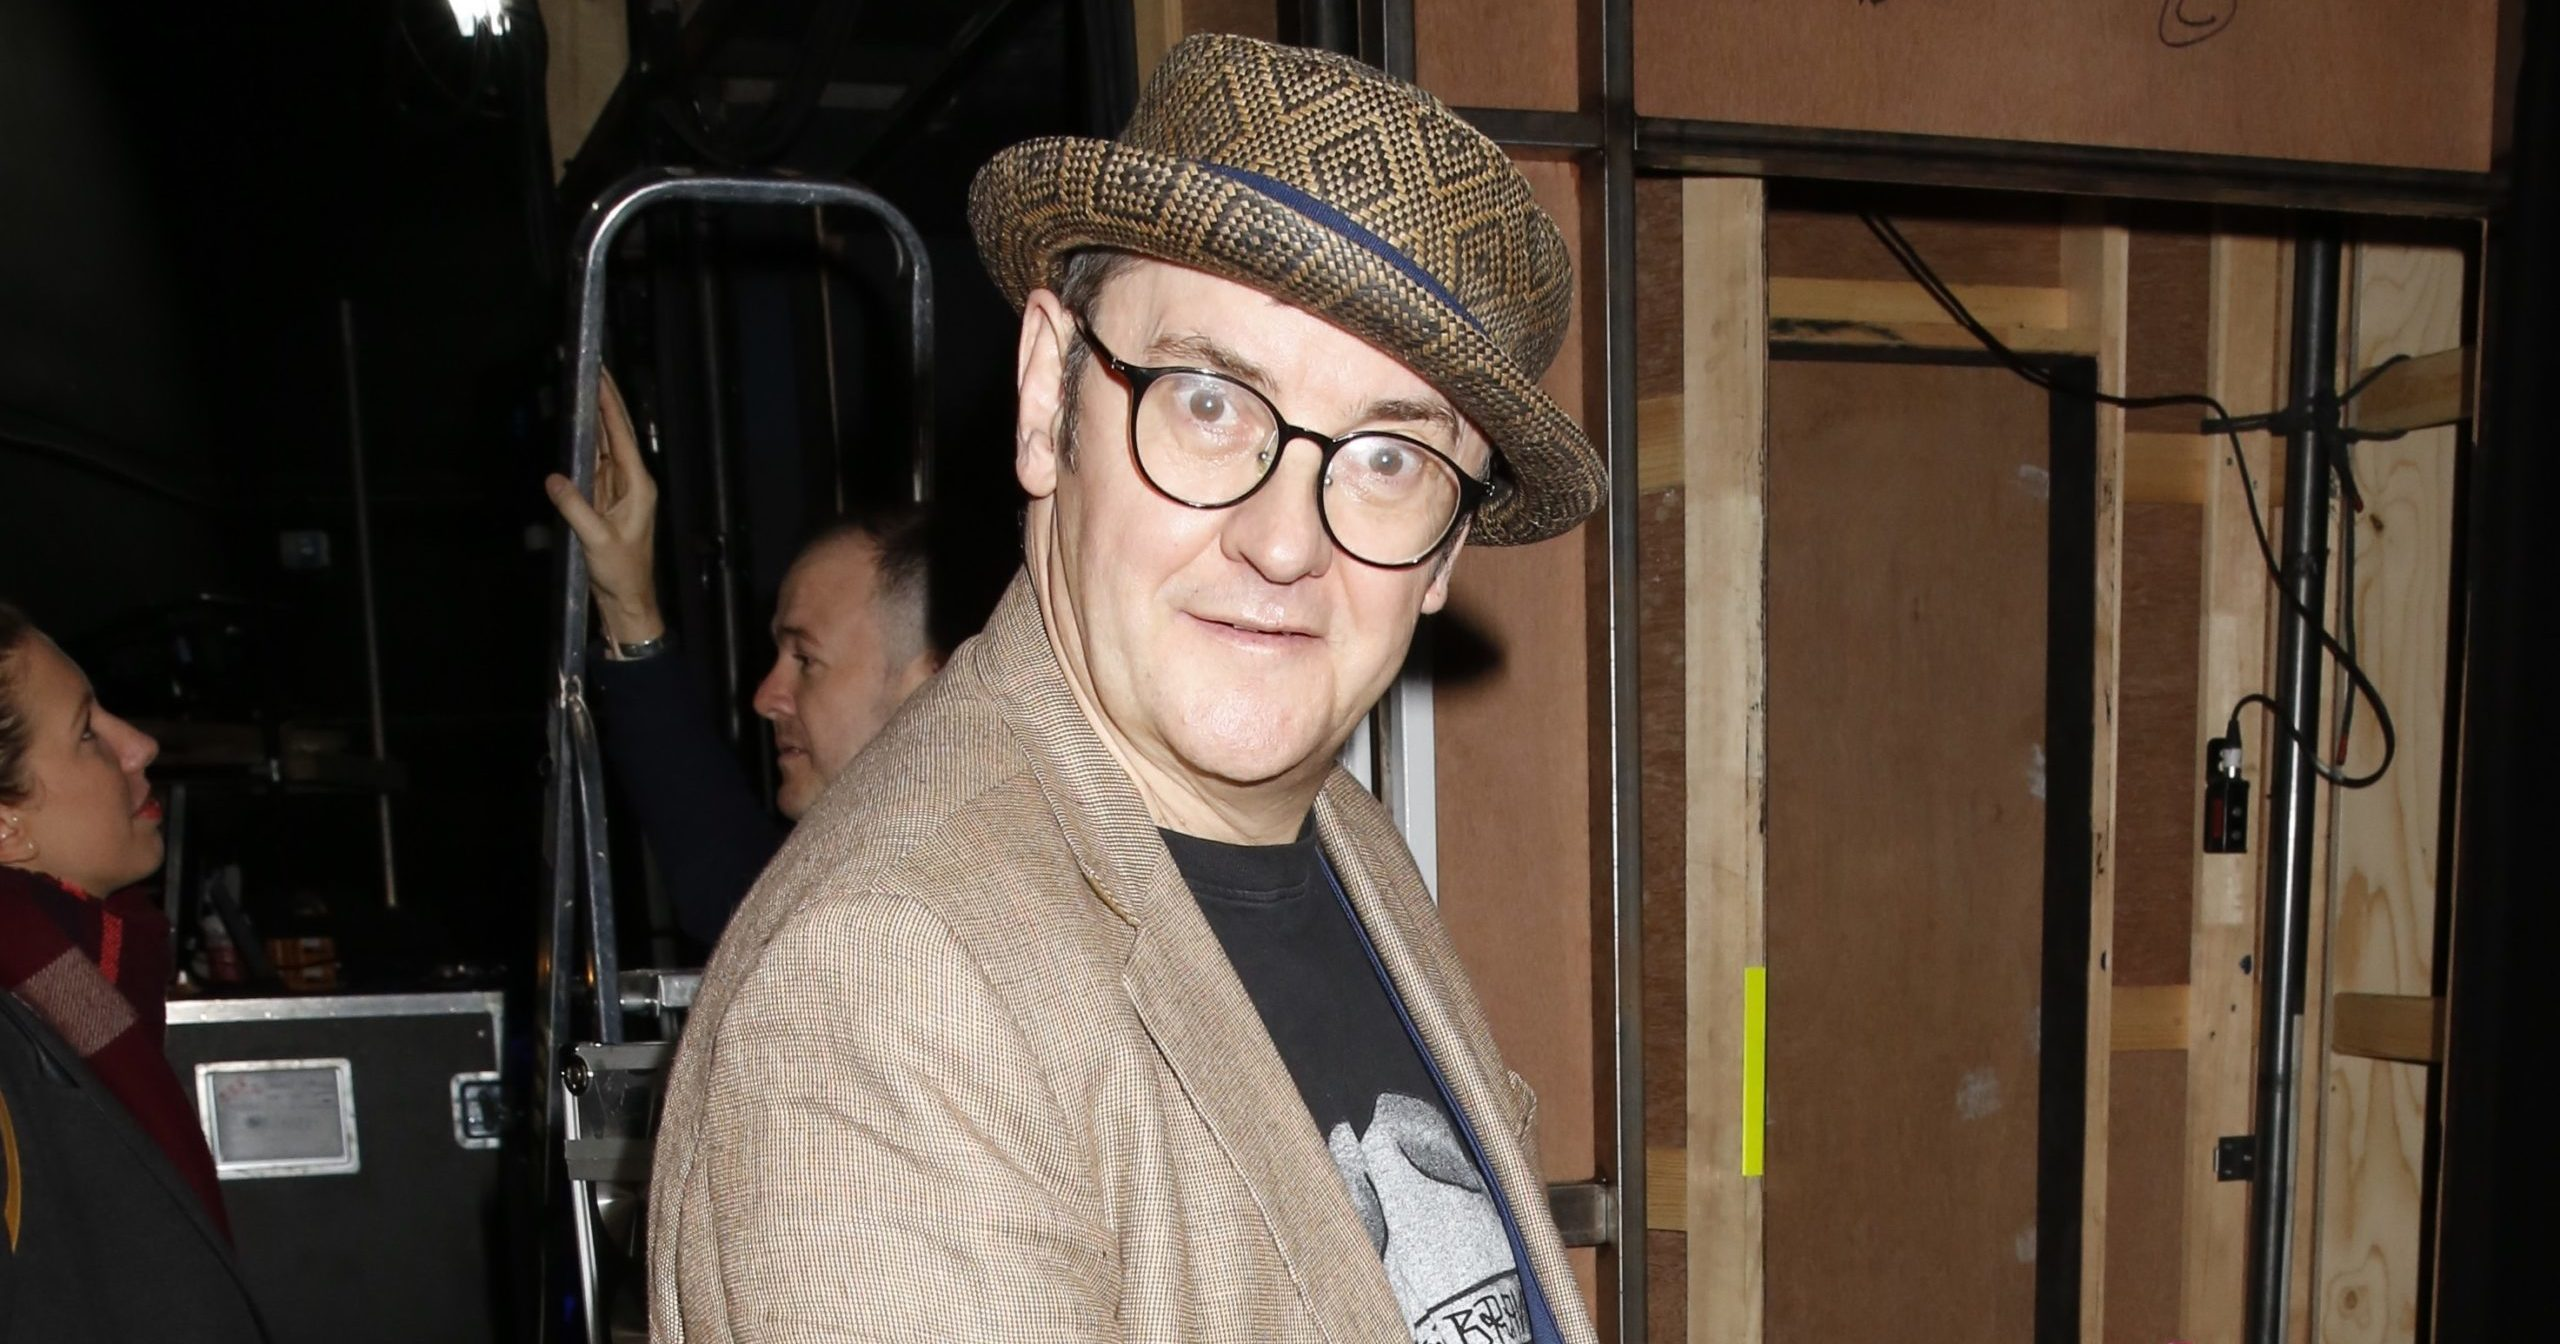 The One Show viewers stunned at how different comedian Joe Pasquale looks